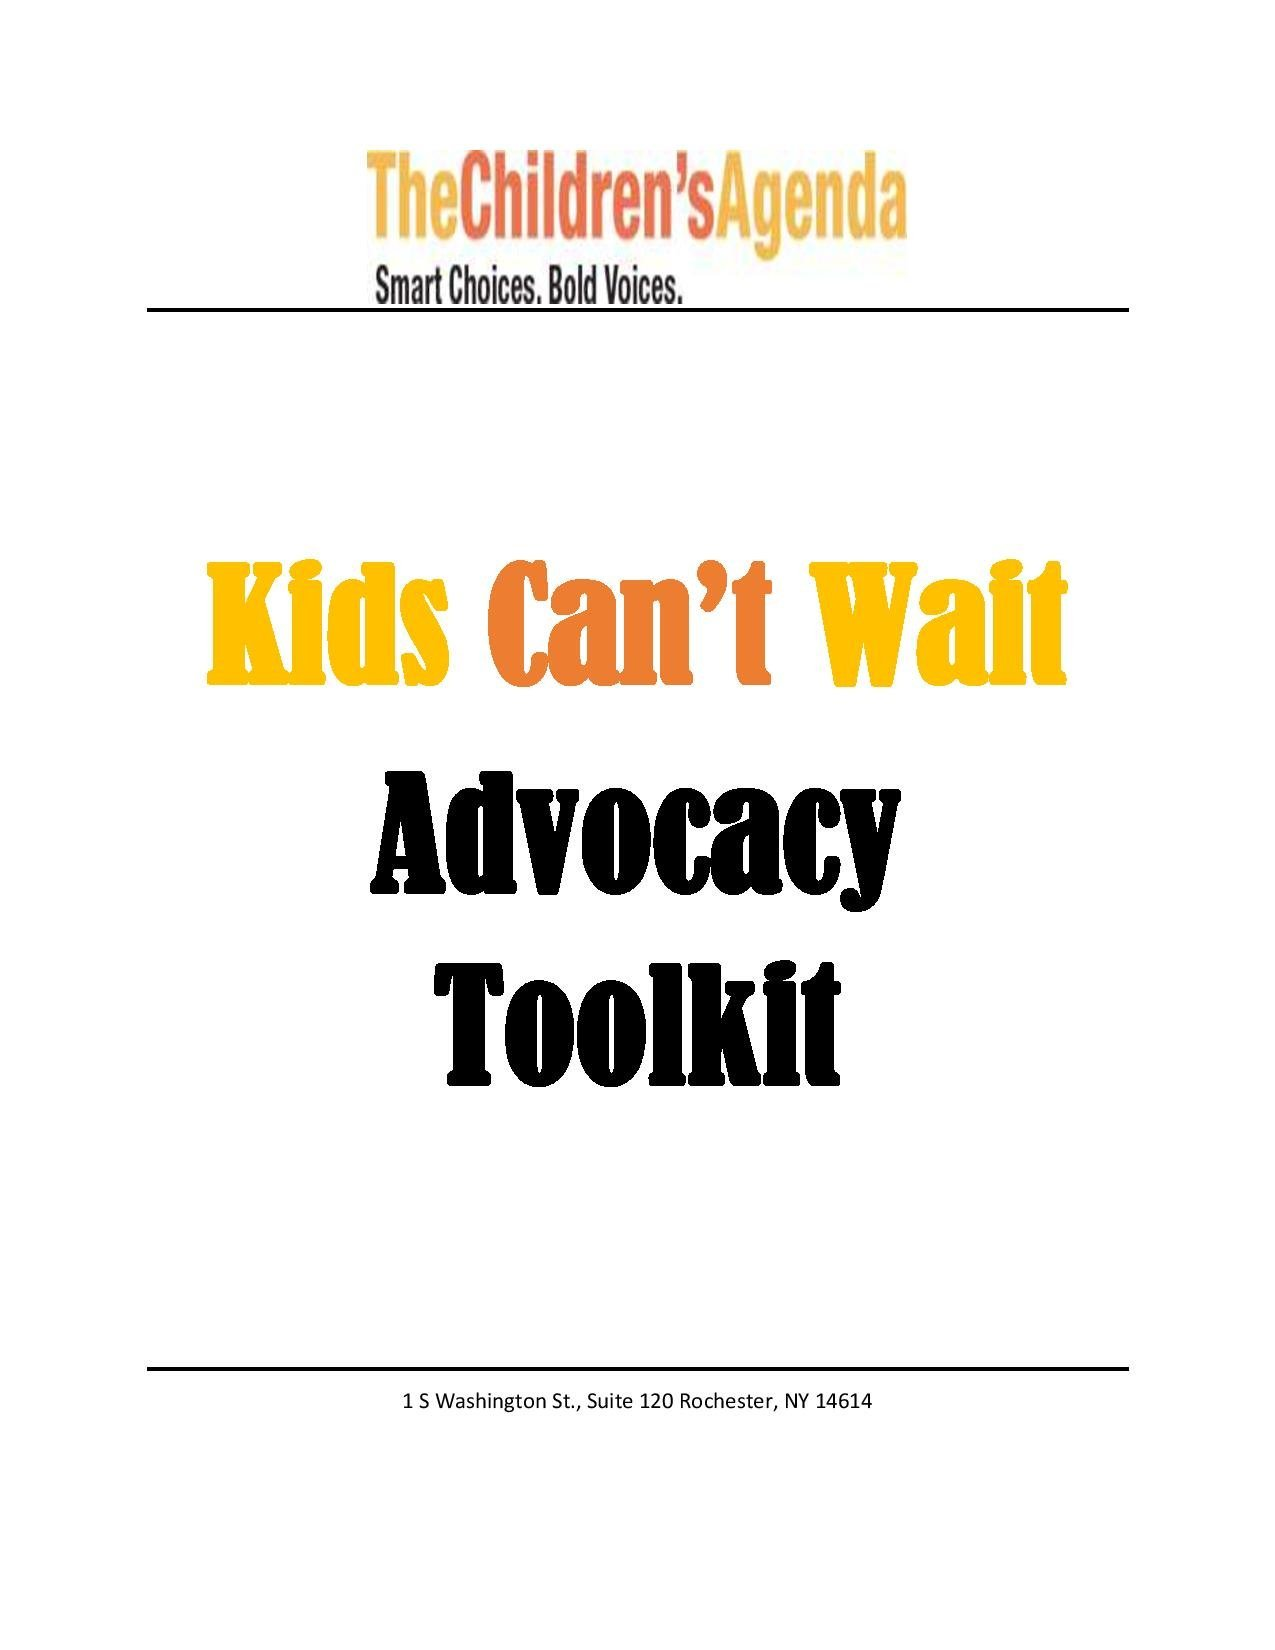 Kids Can't Wait Advocacy Toolkit